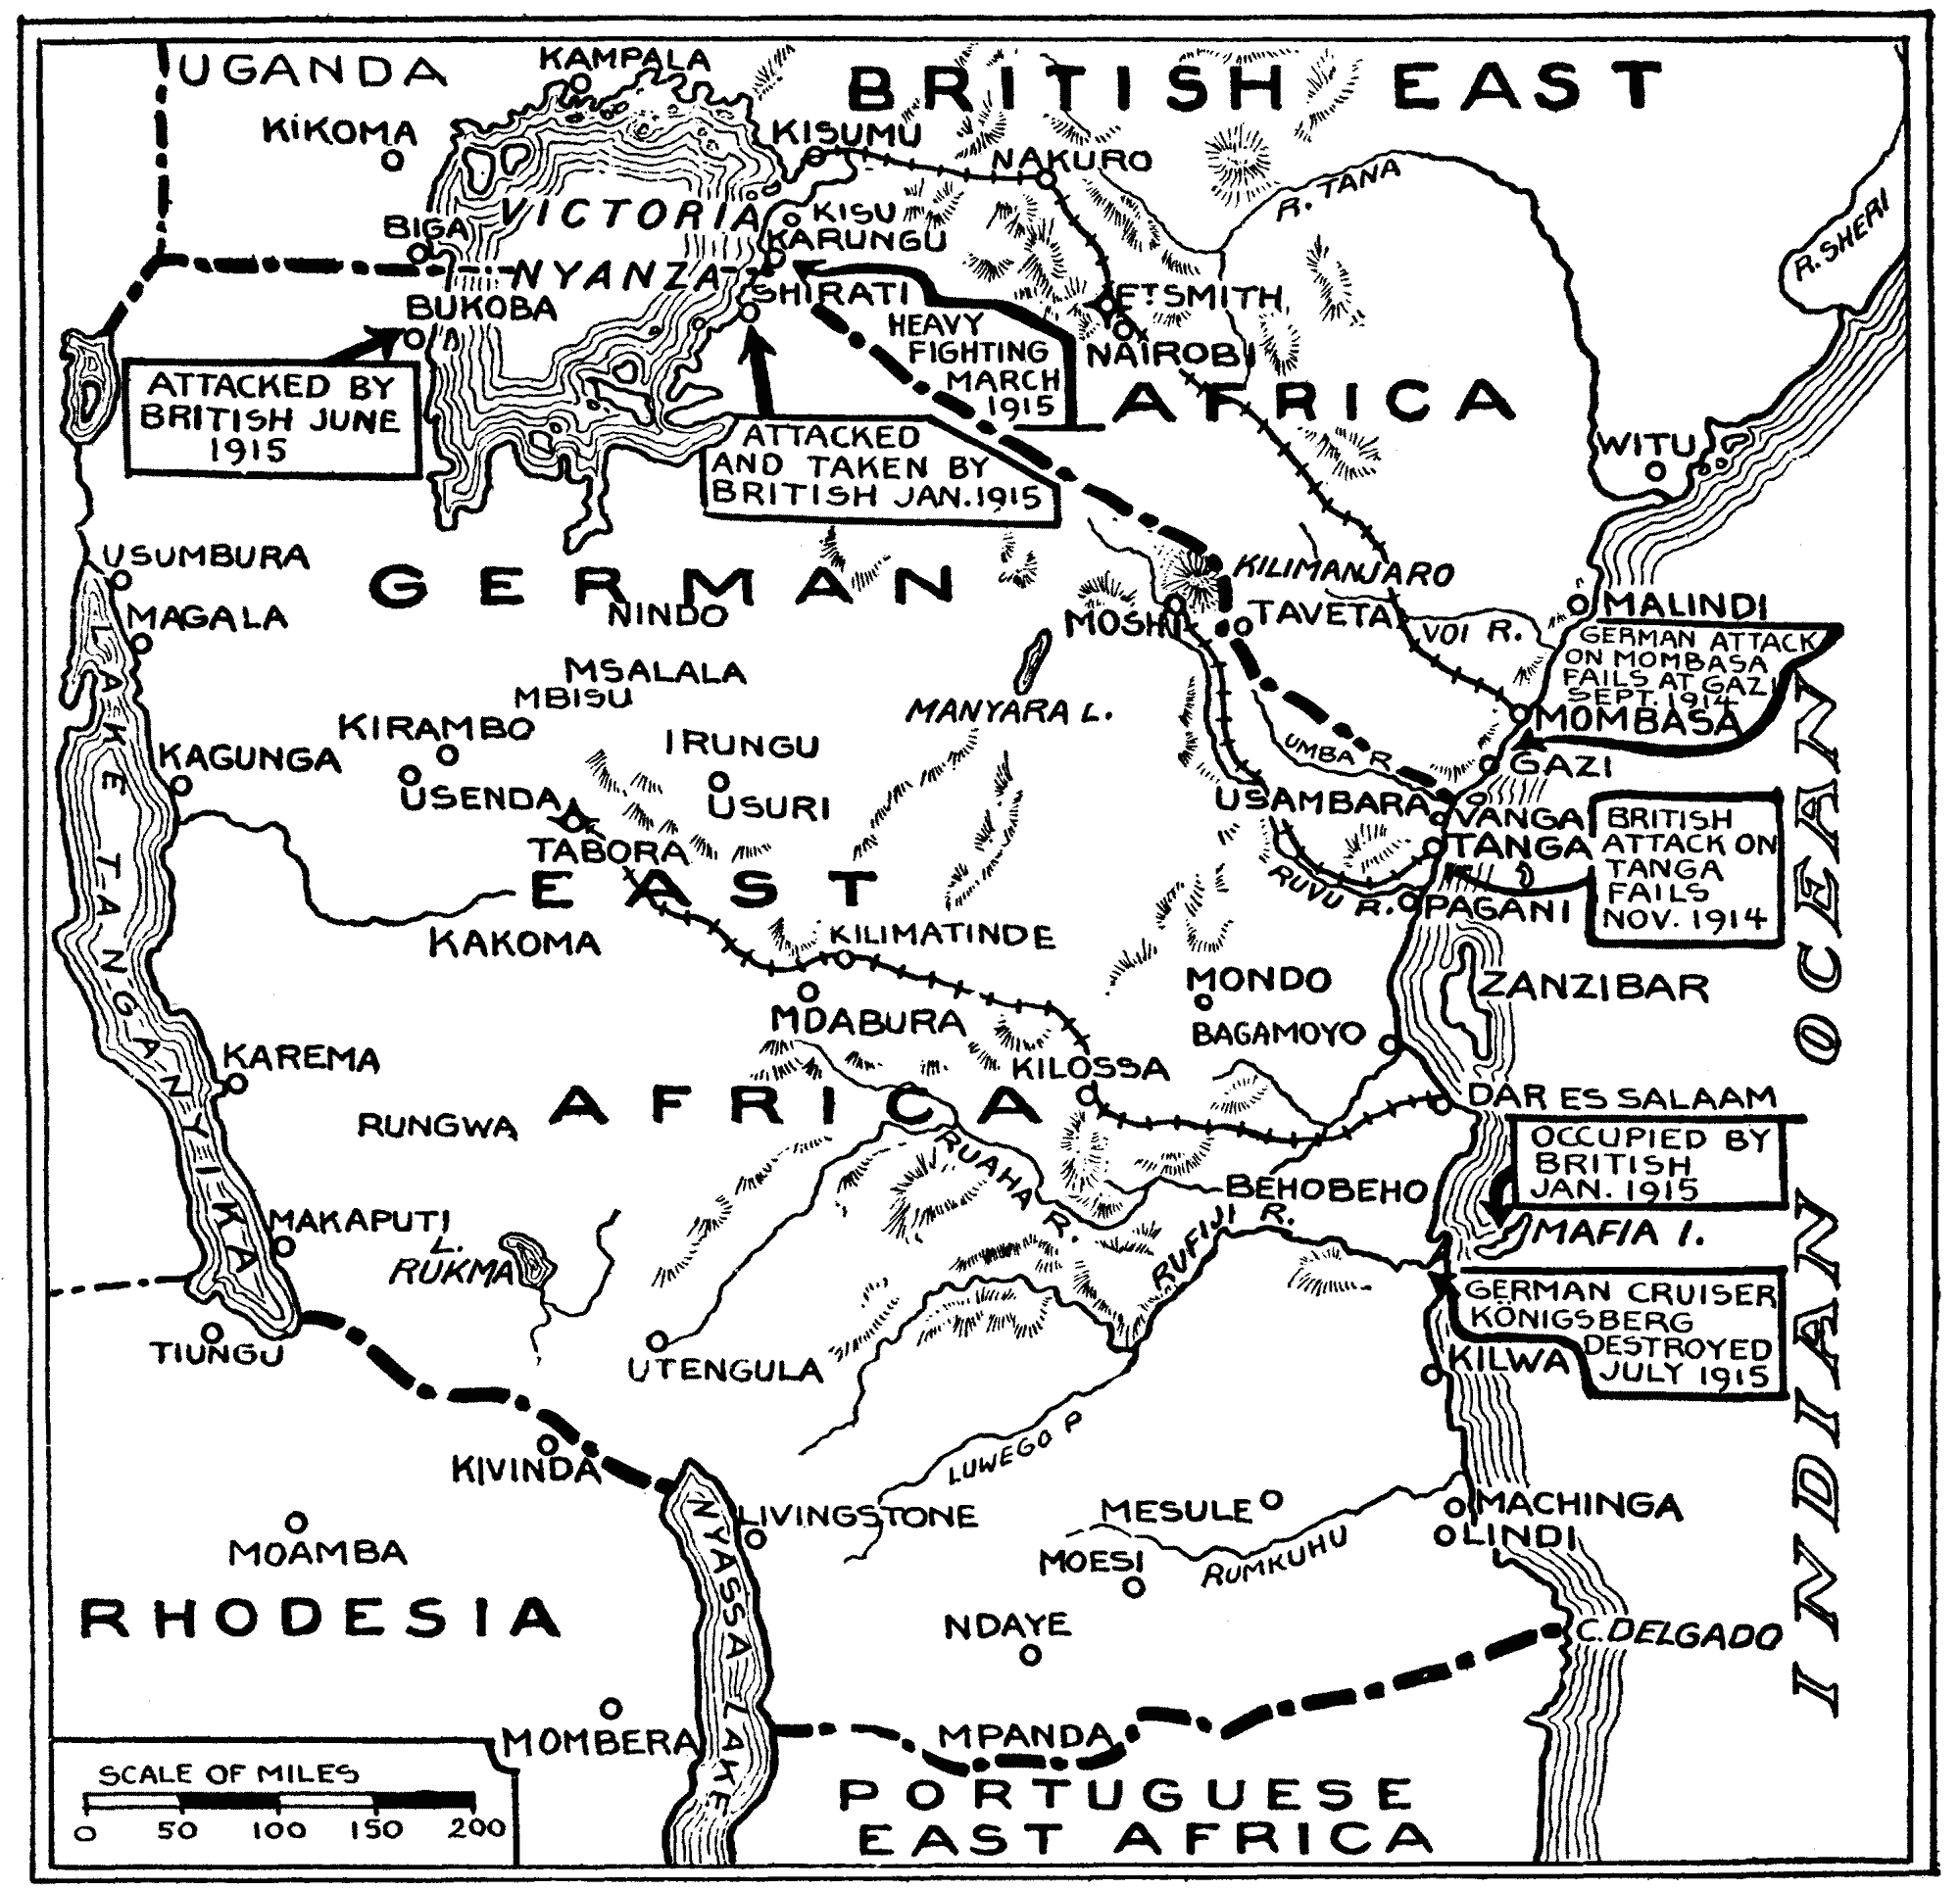 Map of the East India campaign to August 1915